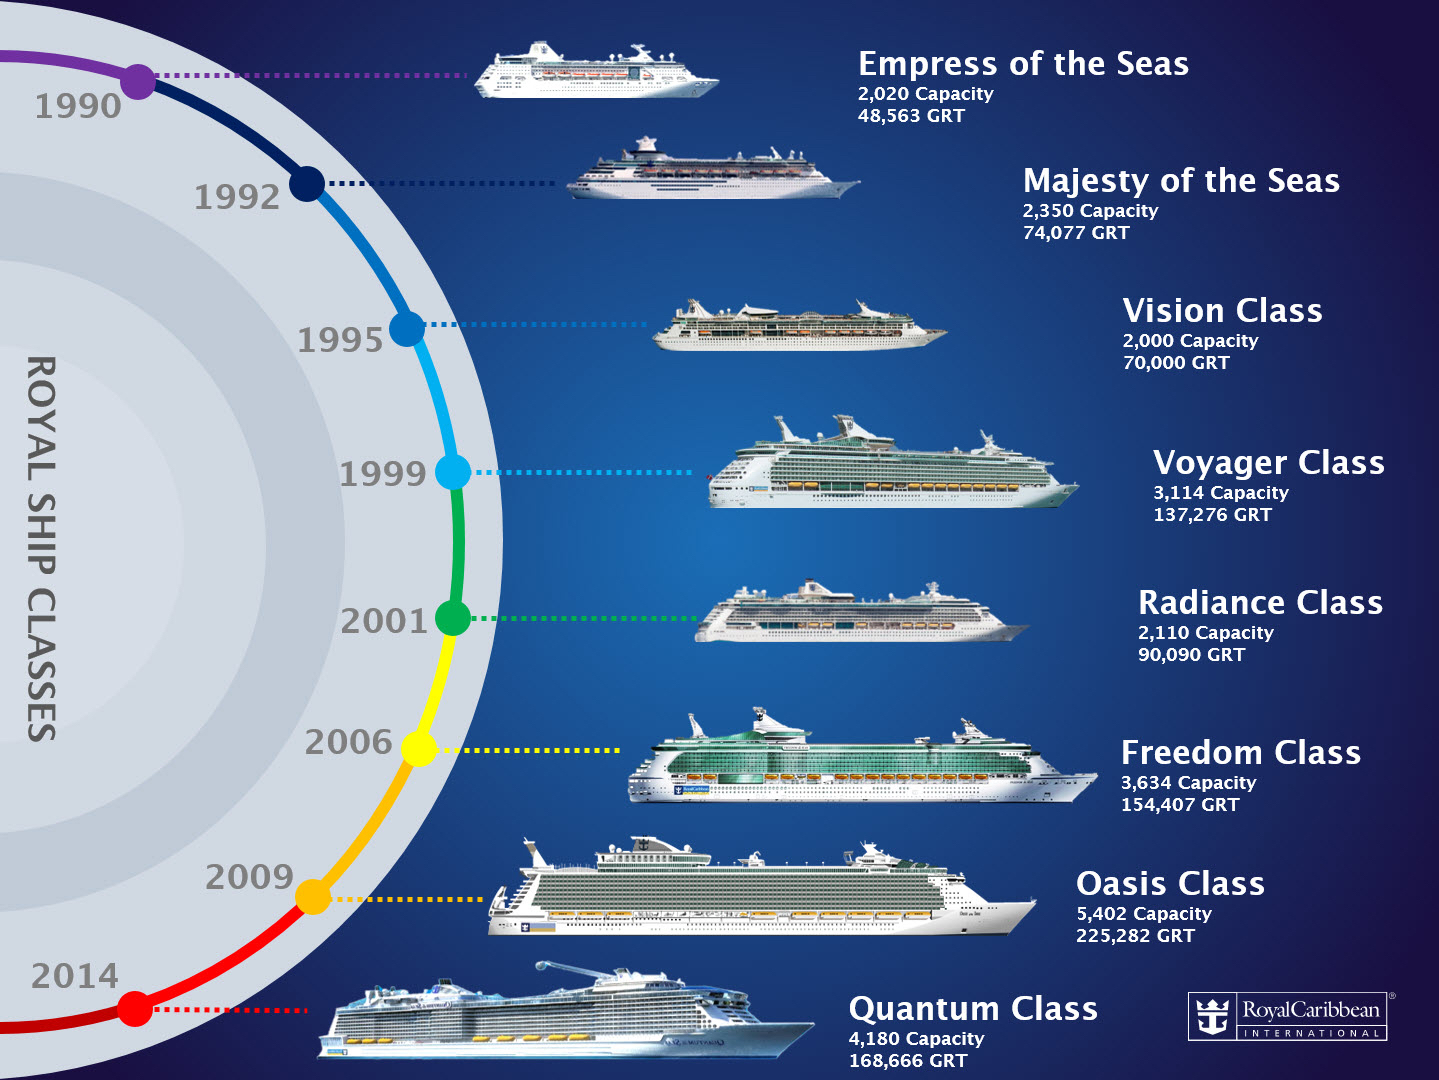 Royal Caribbean ships by class and year.